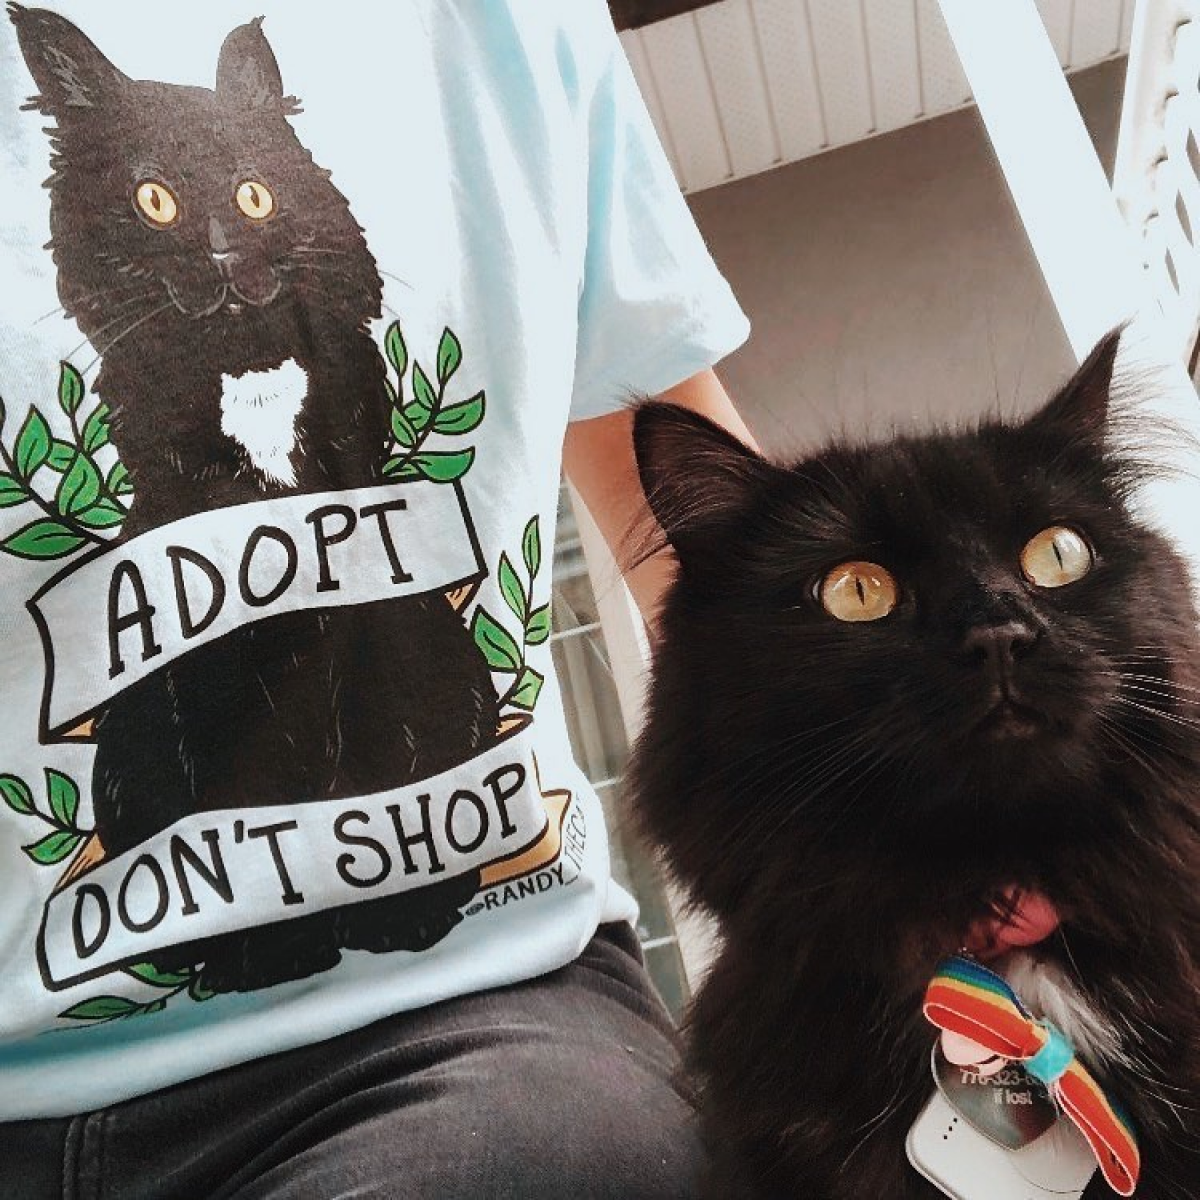 Animal portraits is a top t-shirt design trend in 2021.